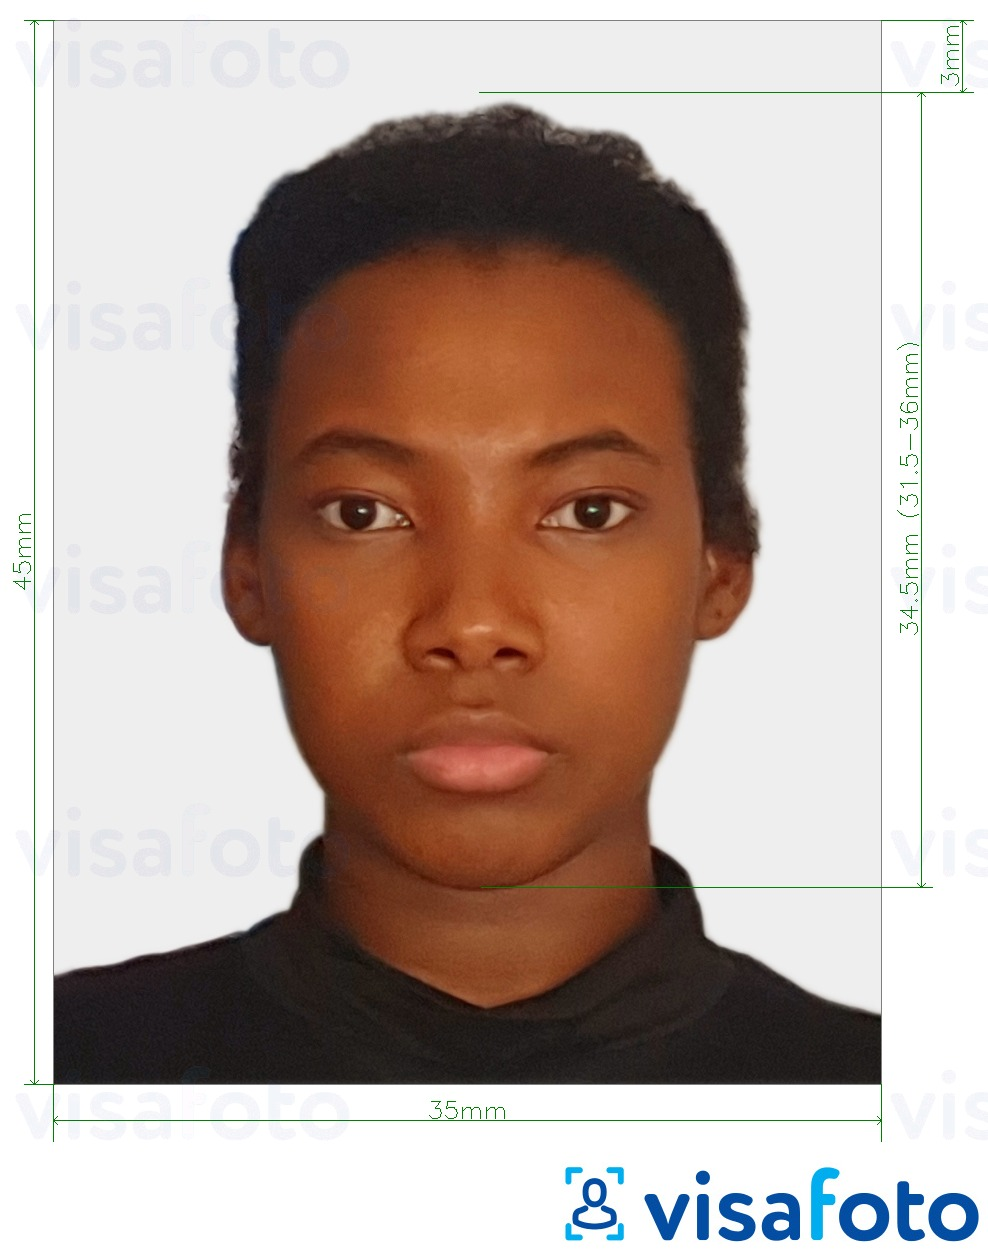 Example of photo for Suriname passport 45x35 mm (1.77x1.37 inch) with exact size specification